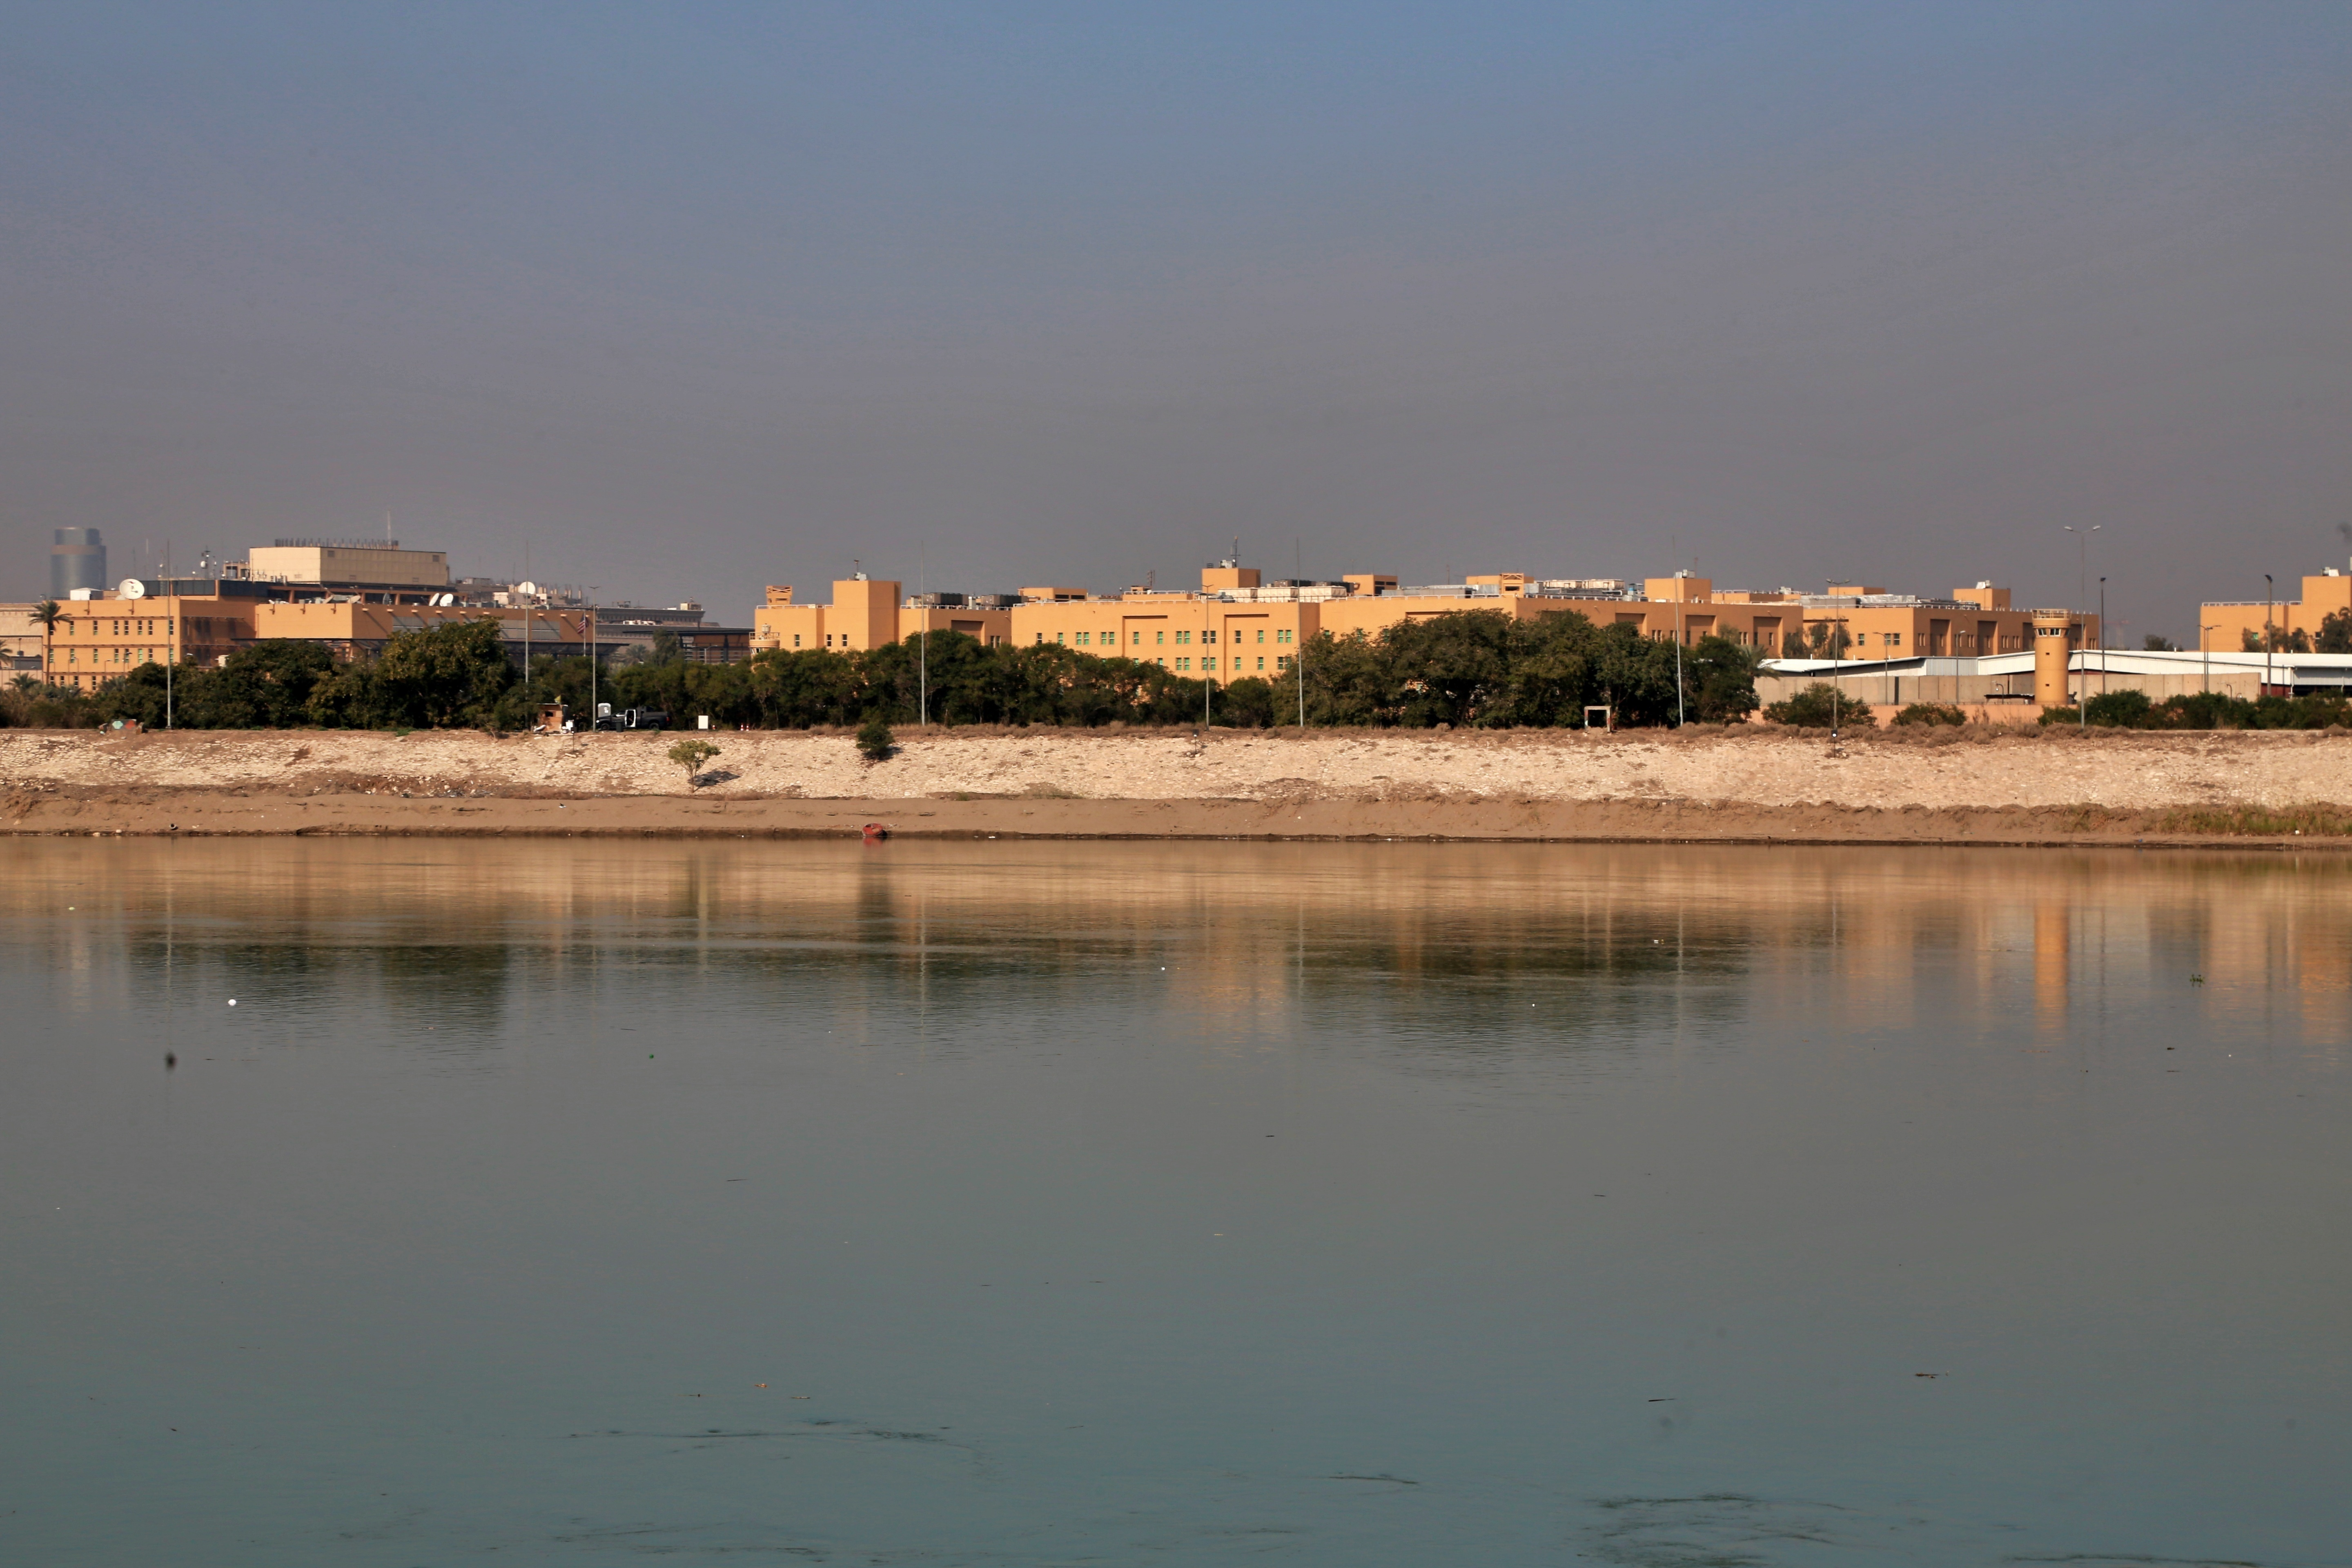 U.S. Embassy is seen from across the Tigris River in Baghdad, Iraq, on Jan. 3, 2020.